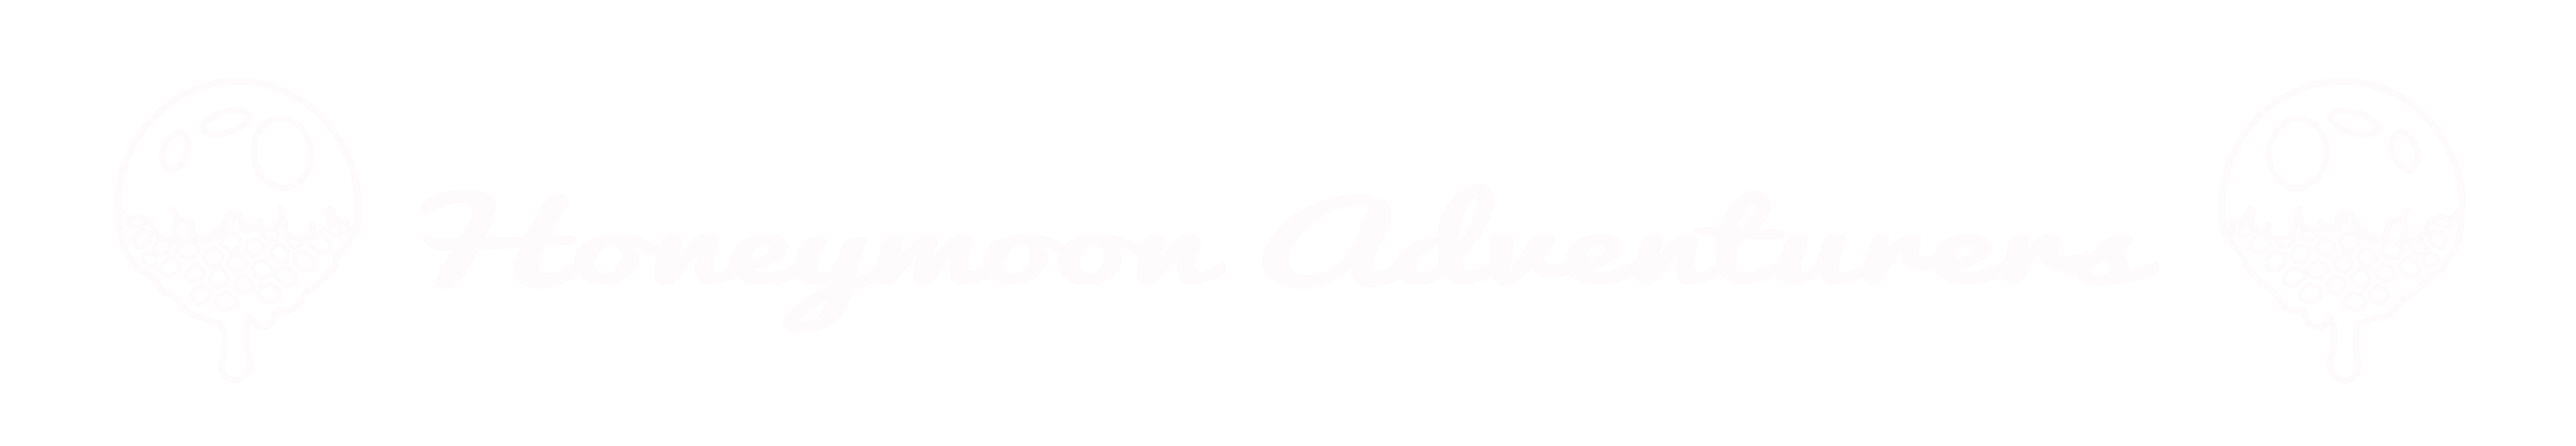 lOGO-ONLY-LINES_WHTE&TITLE